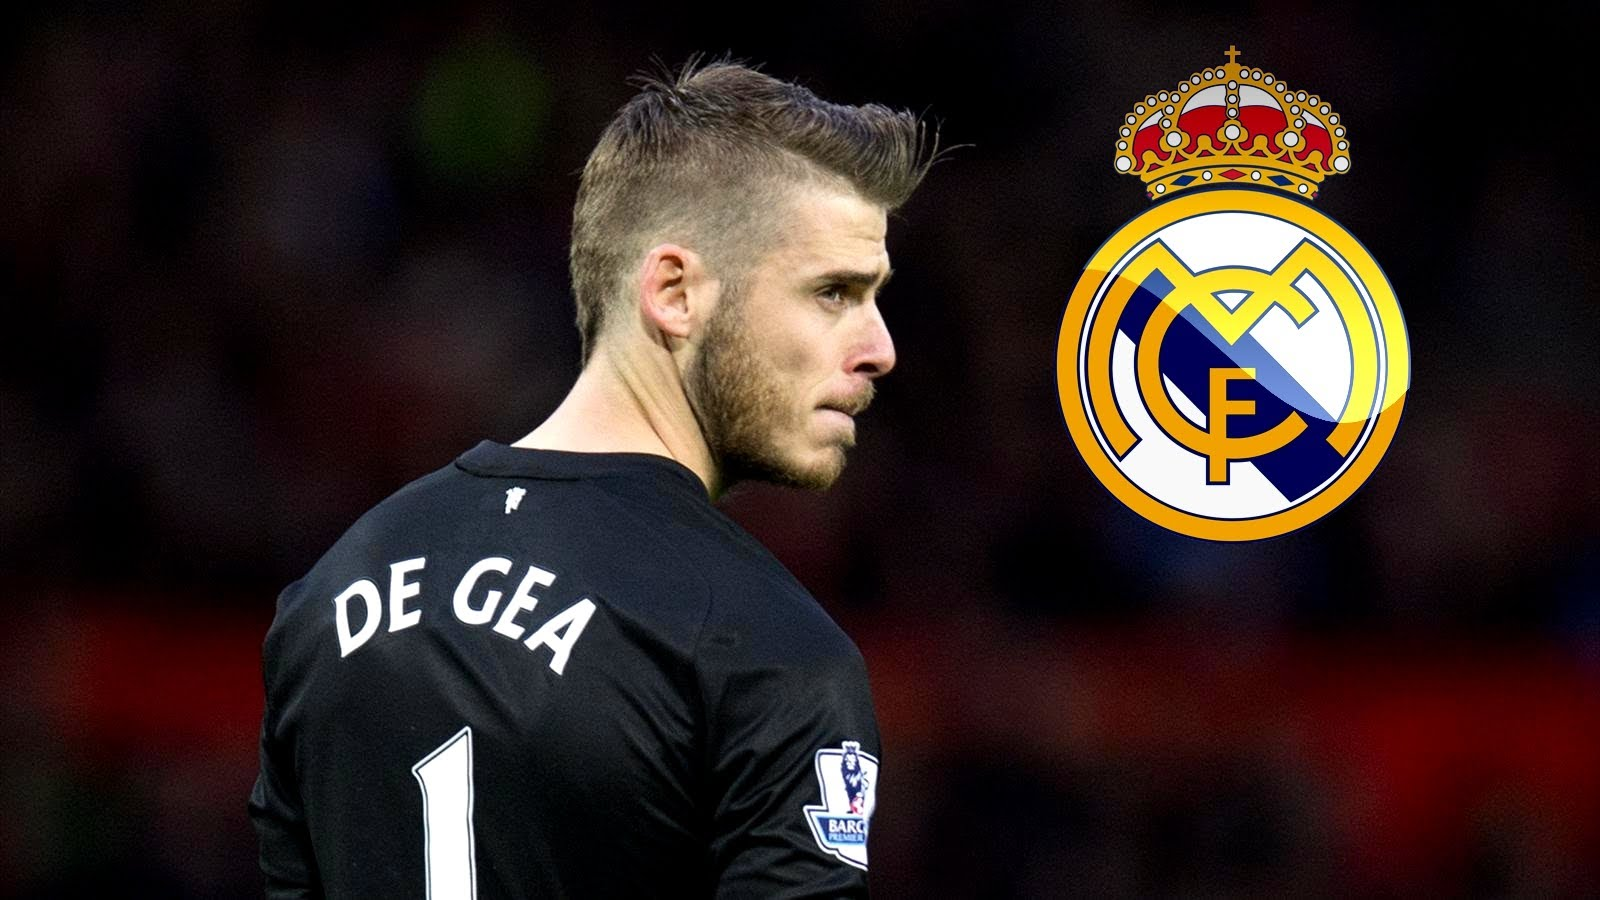 De Gea, Real Madrid